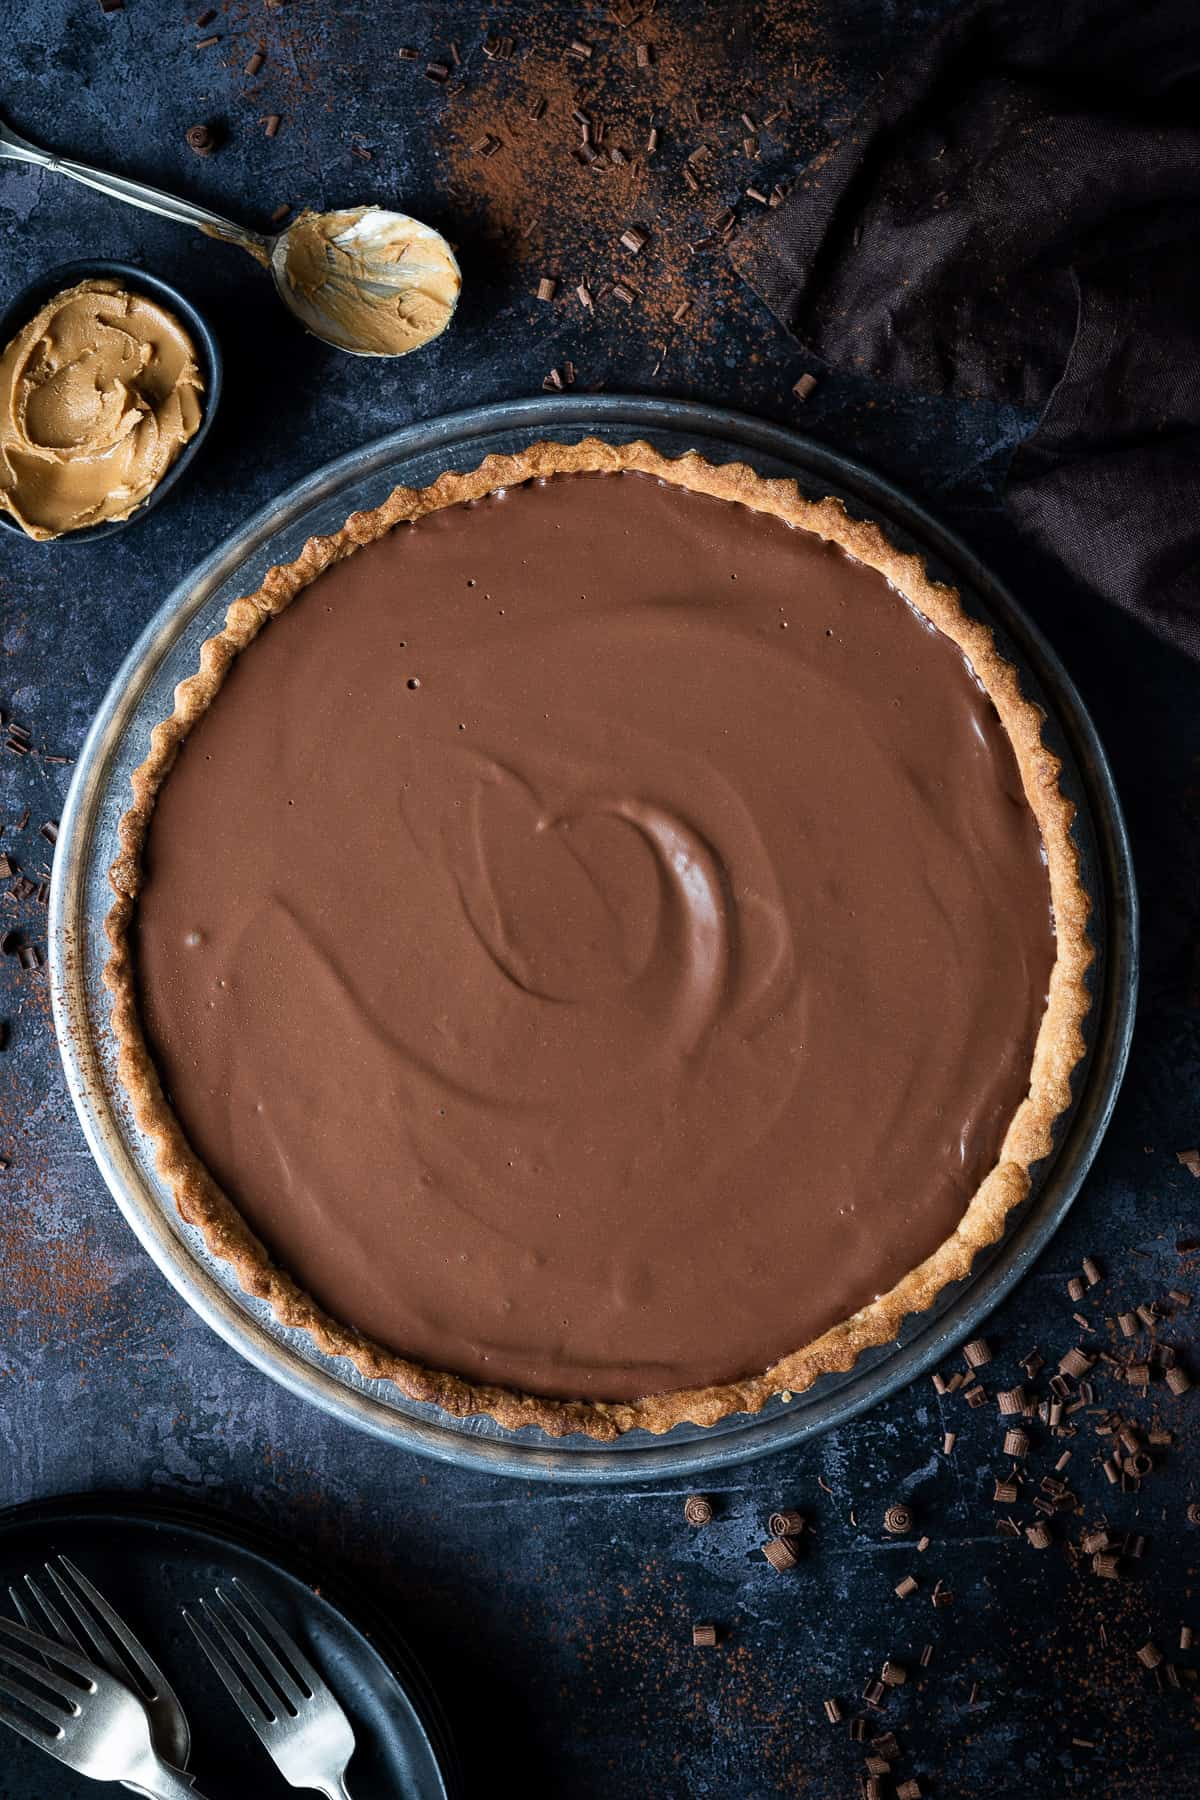 Vegan peanut butter chocolate tart on a metal plate on a dark background with chocolate shavings, a bowl and spoon of peanut butter, a brown cloth and black plates and forks.